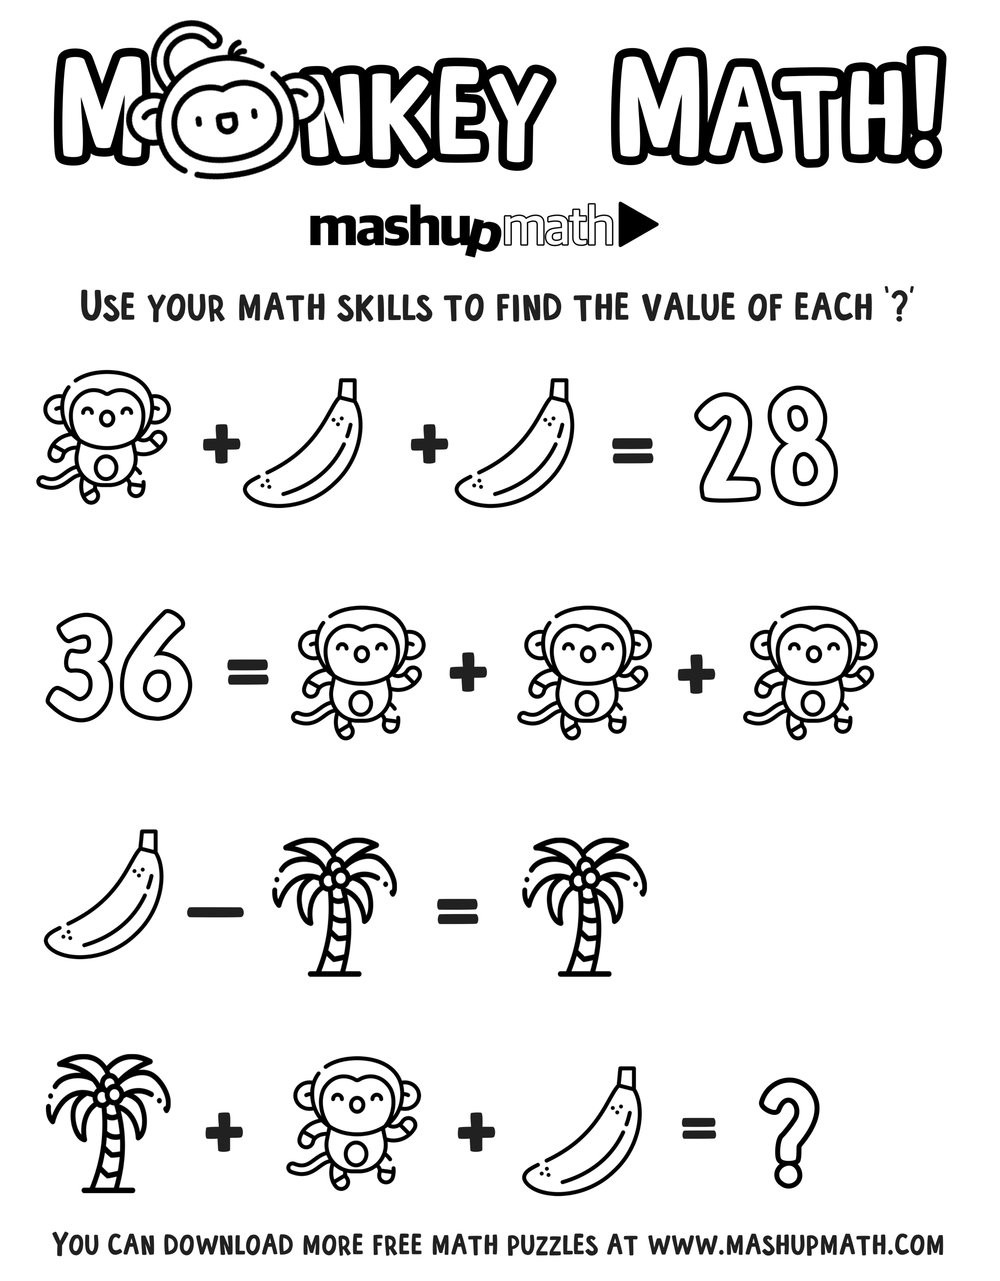 2nd Grade Math Challenge Worksheets Free Math Coloring Worksheets for 5th and 6th Grade — Mashup